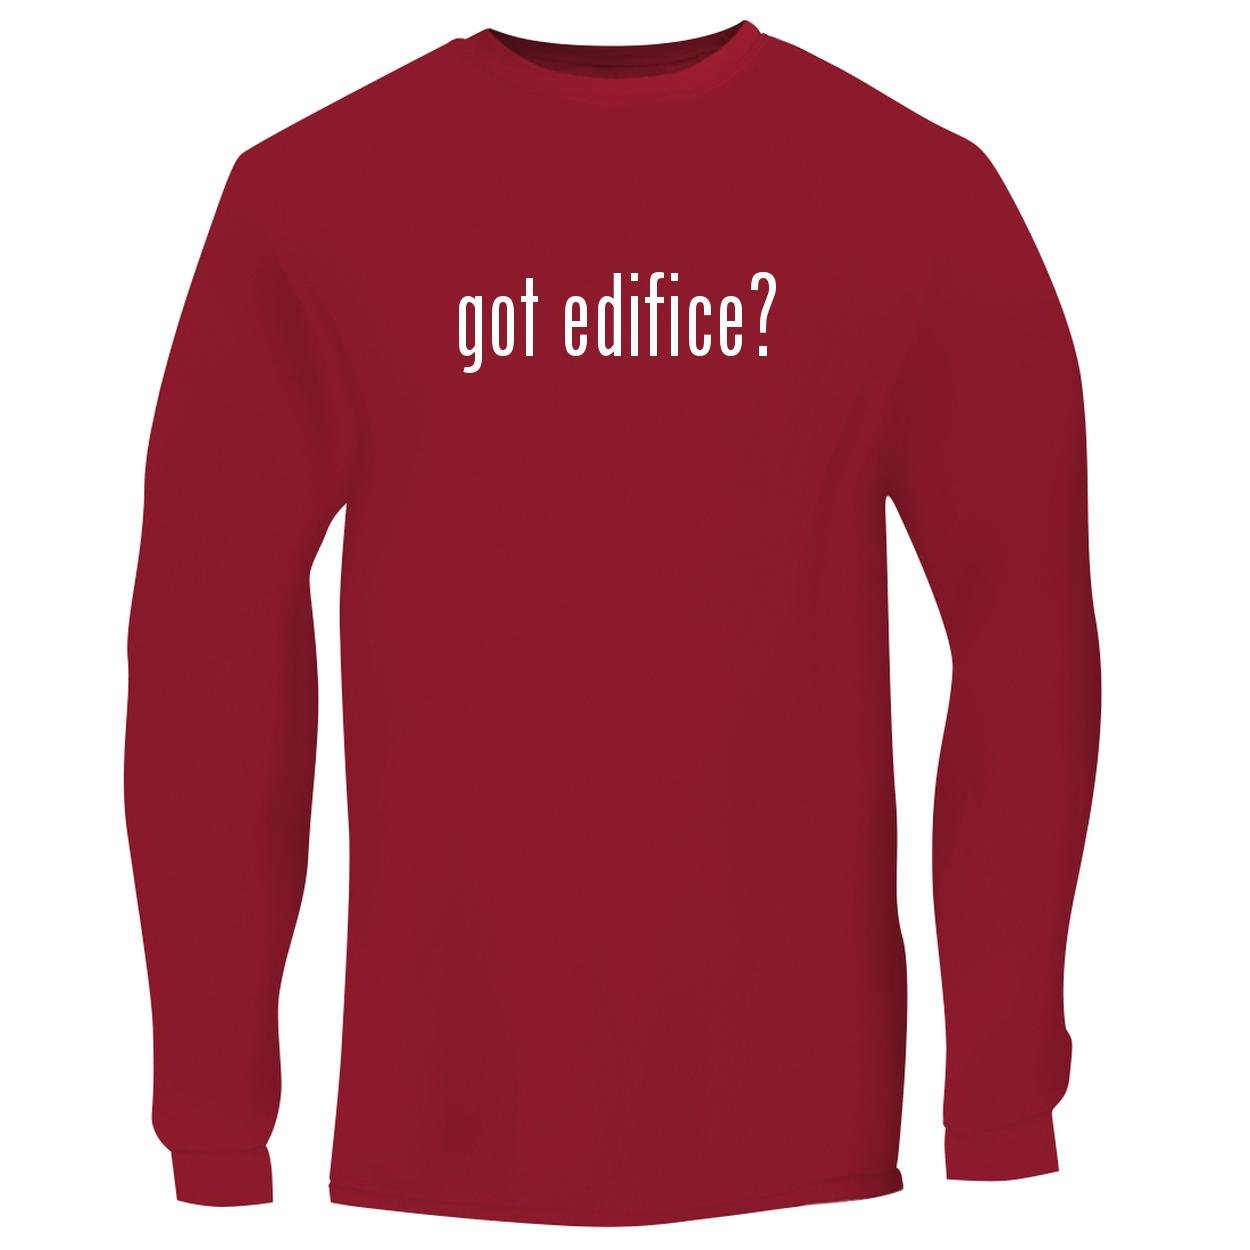 BH Cool Designs got Edifice? - Men's Long Sleeve Graphic Tee, Red, Small by BH Cool Designs